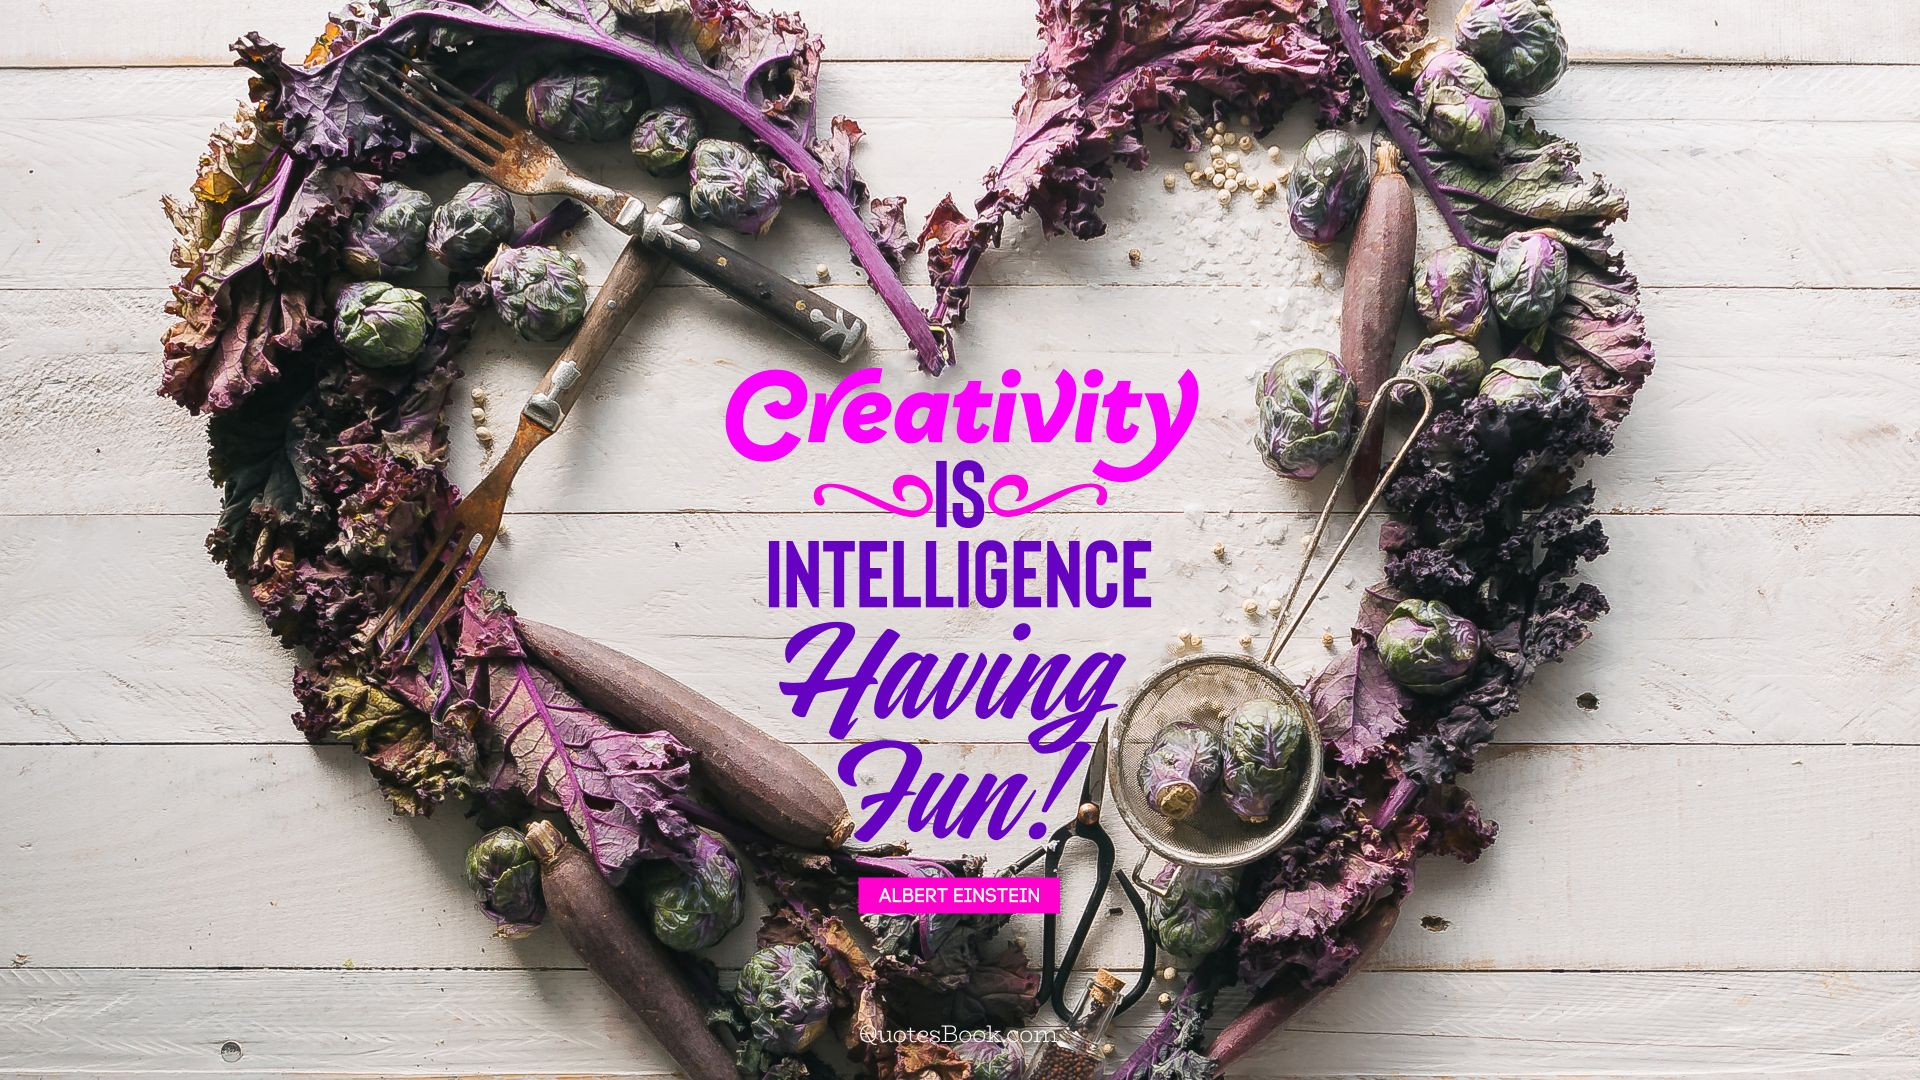 Creativity is intelligence having fun!. - Quote by Albert Einstein